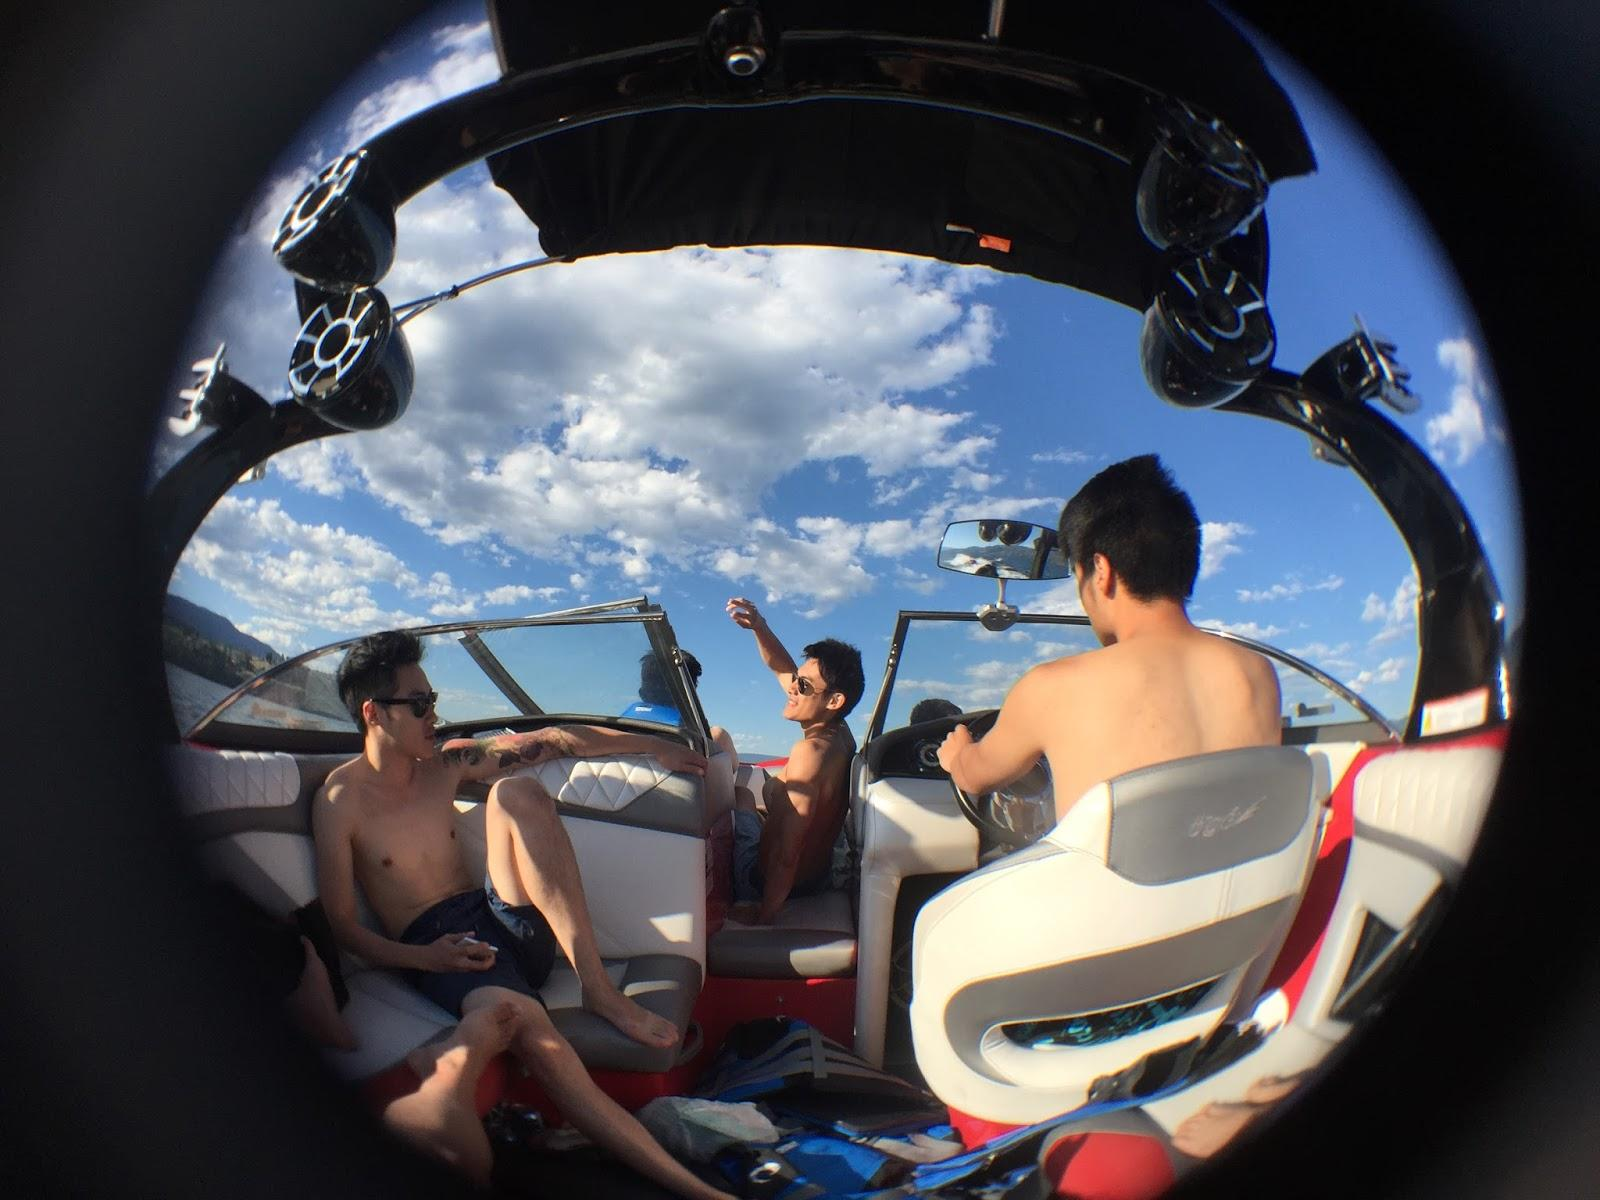 Boating in Kelowna